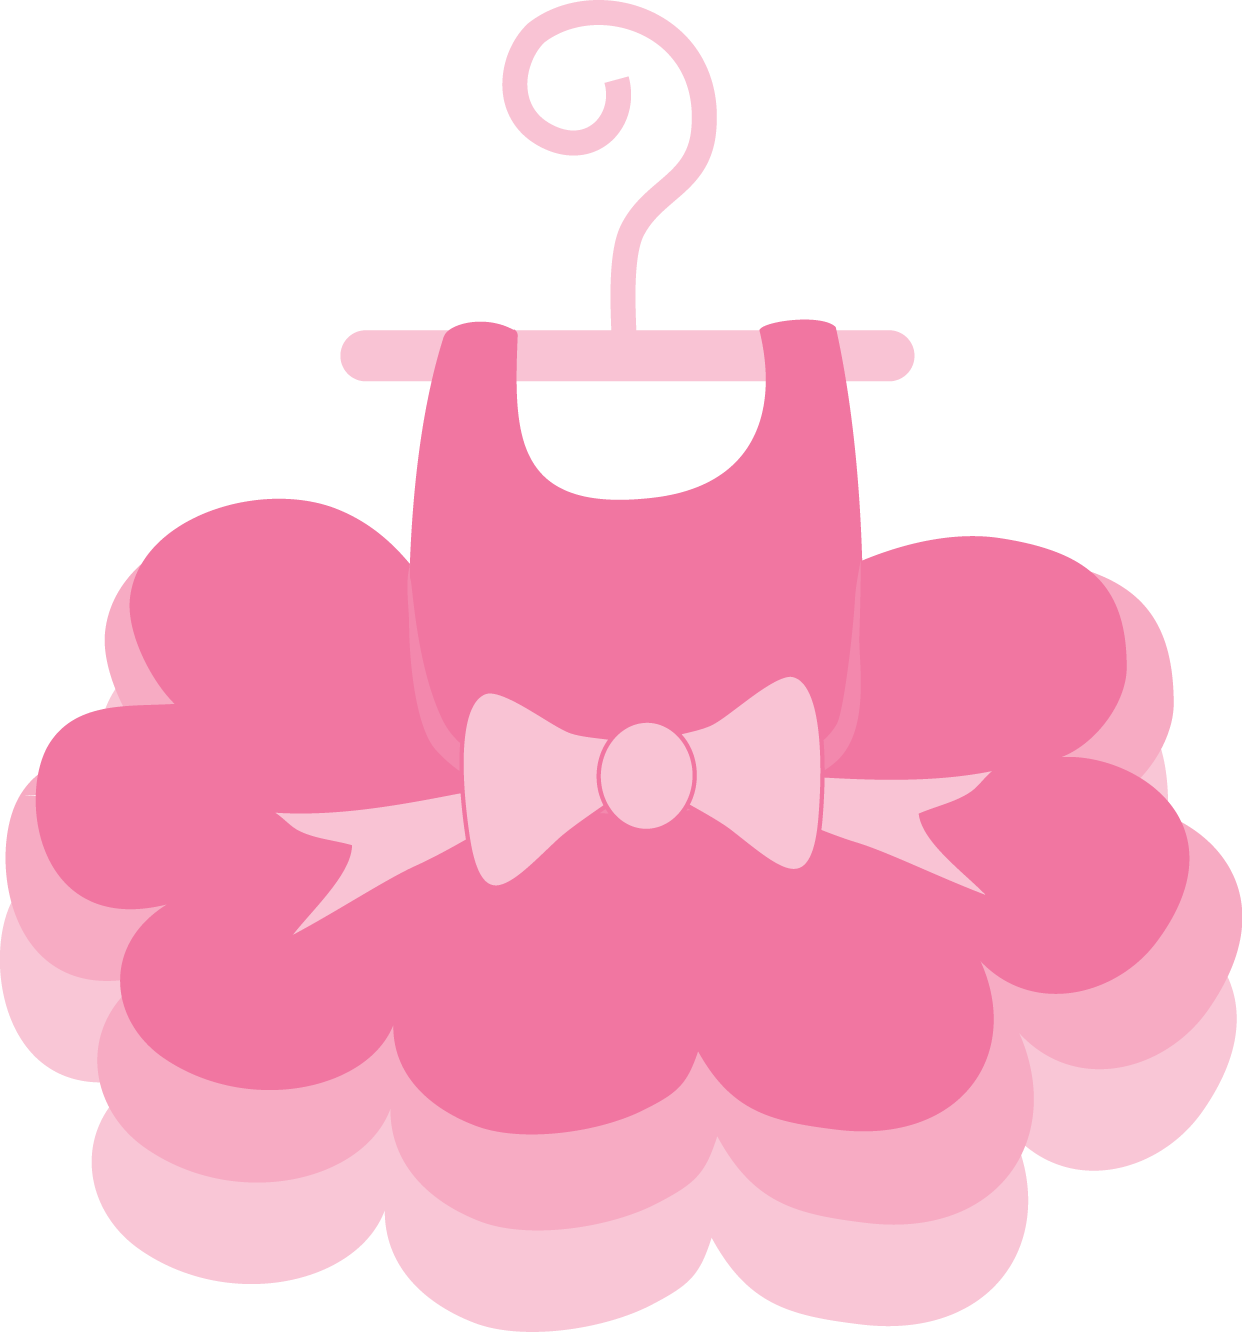 Showering clipart outfit. Ballet minus cerca amb